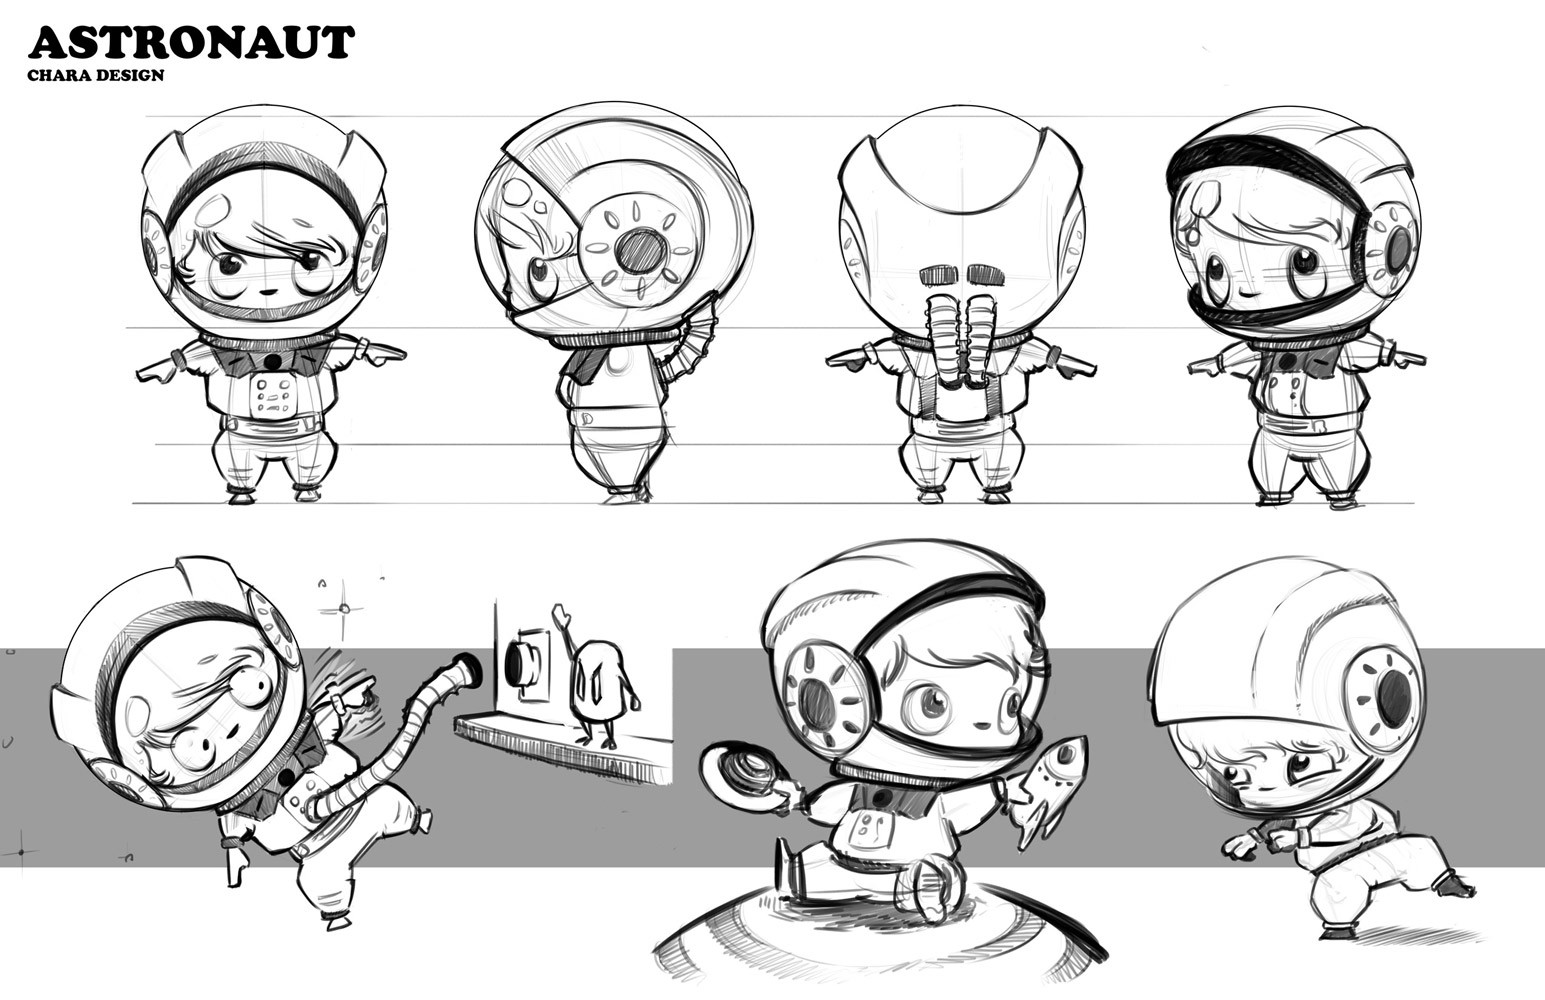 character sketch of an astronaut